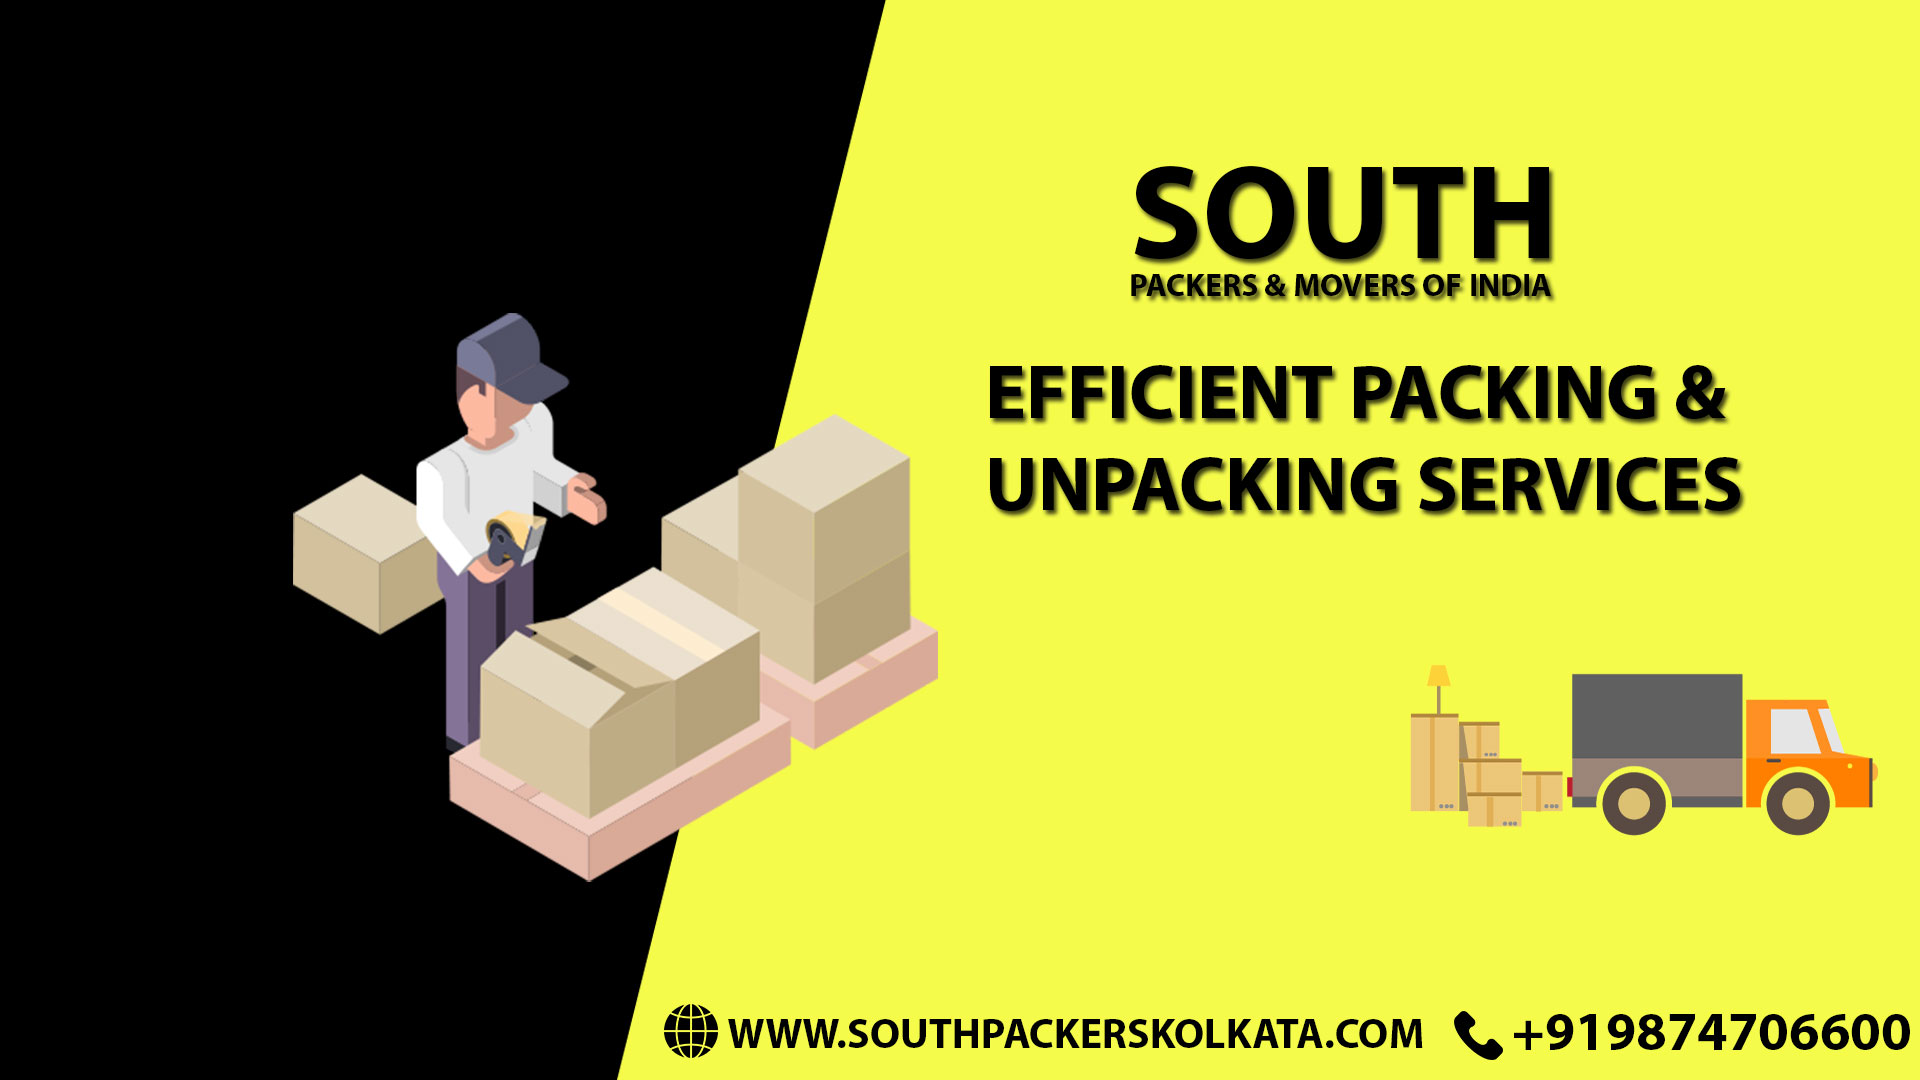 Efficient Packing and Unpacking Services in Kolkata